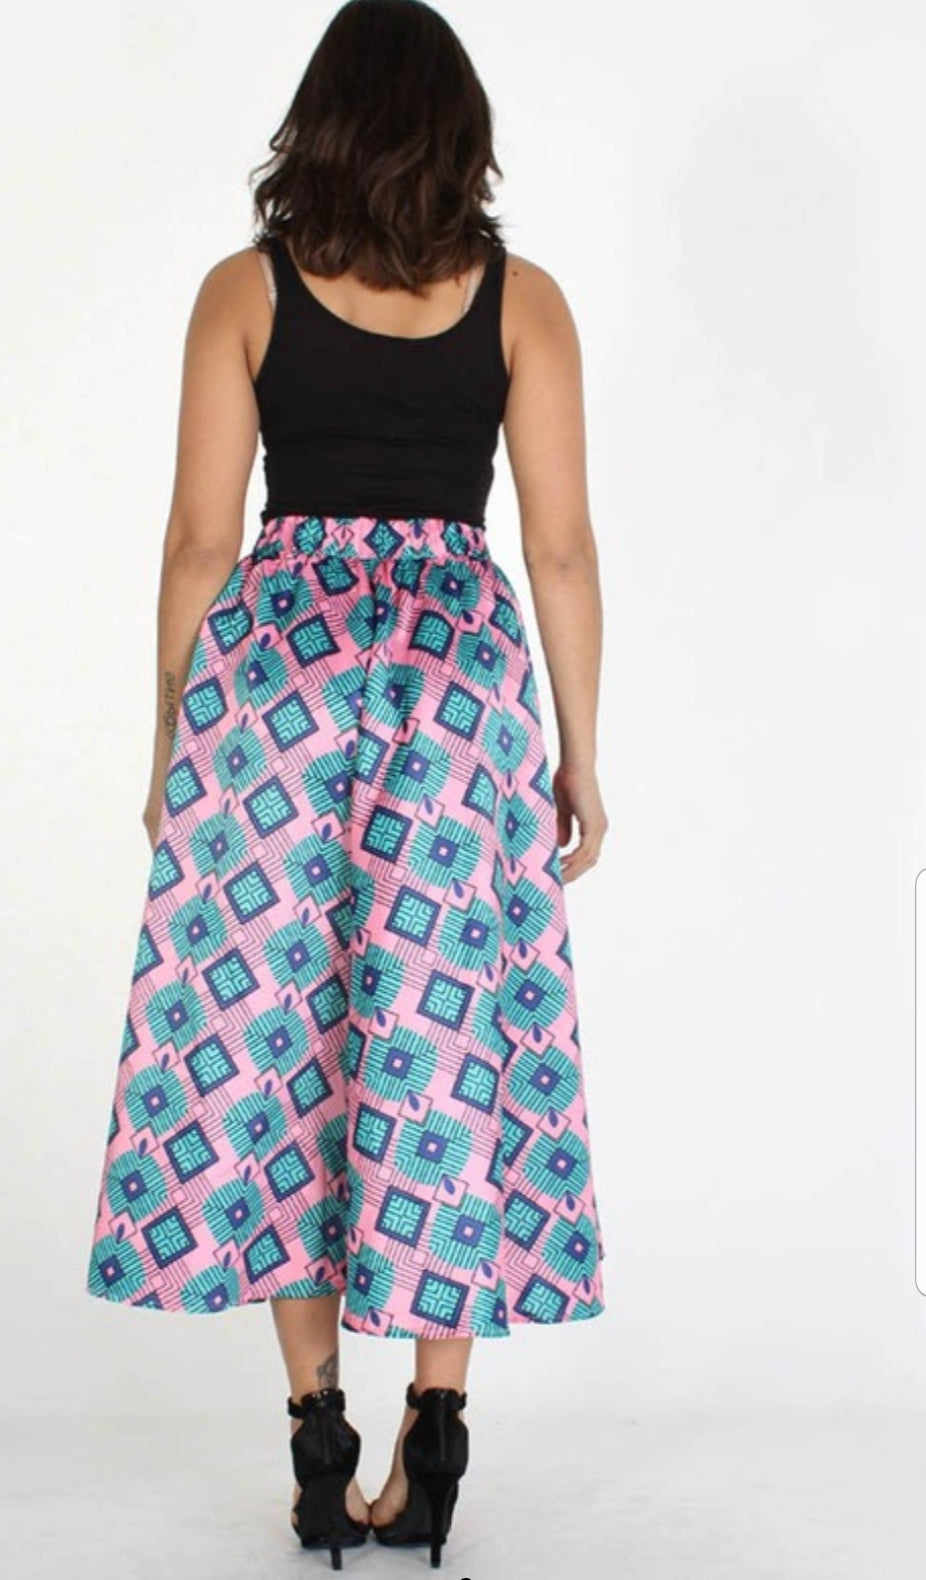 Back full body view of plus size model in a Diamond Pink Print Skirt